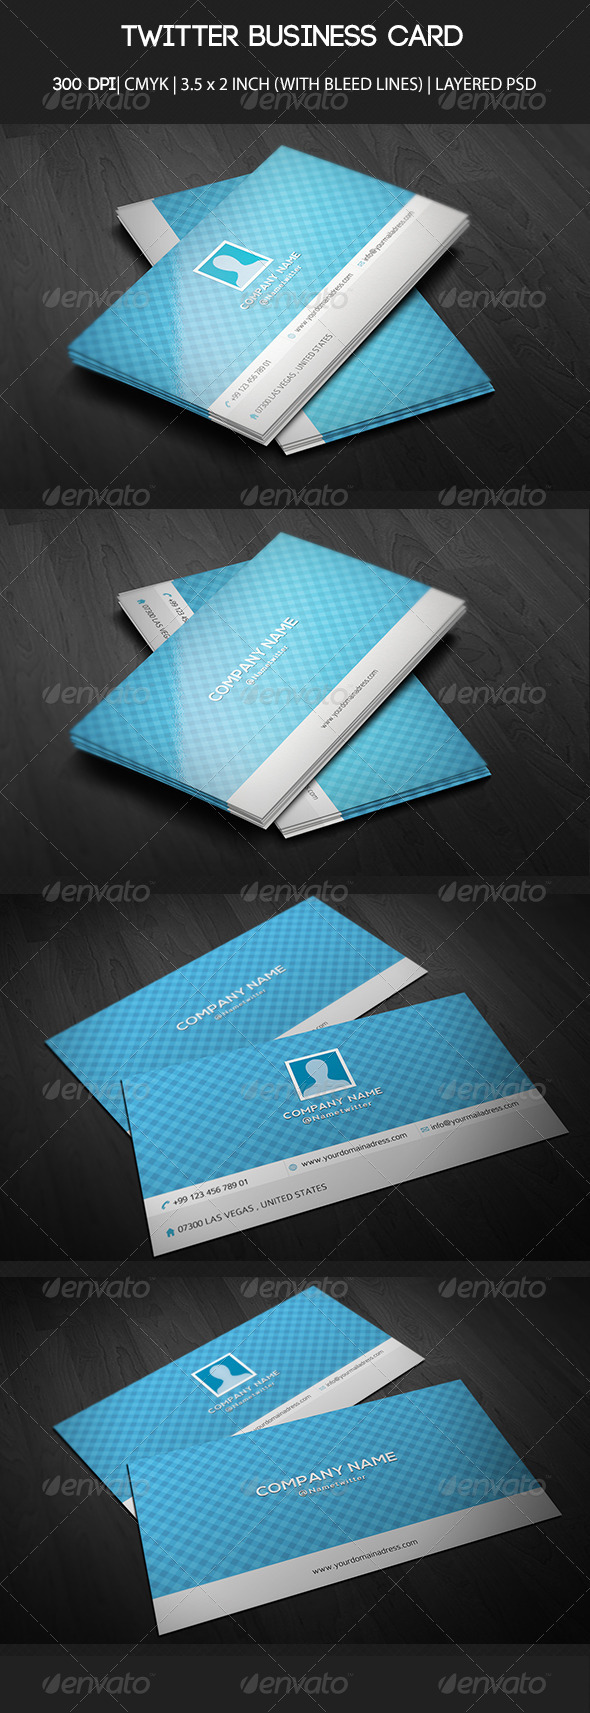 Twitter Business Card - Creative Business Cards